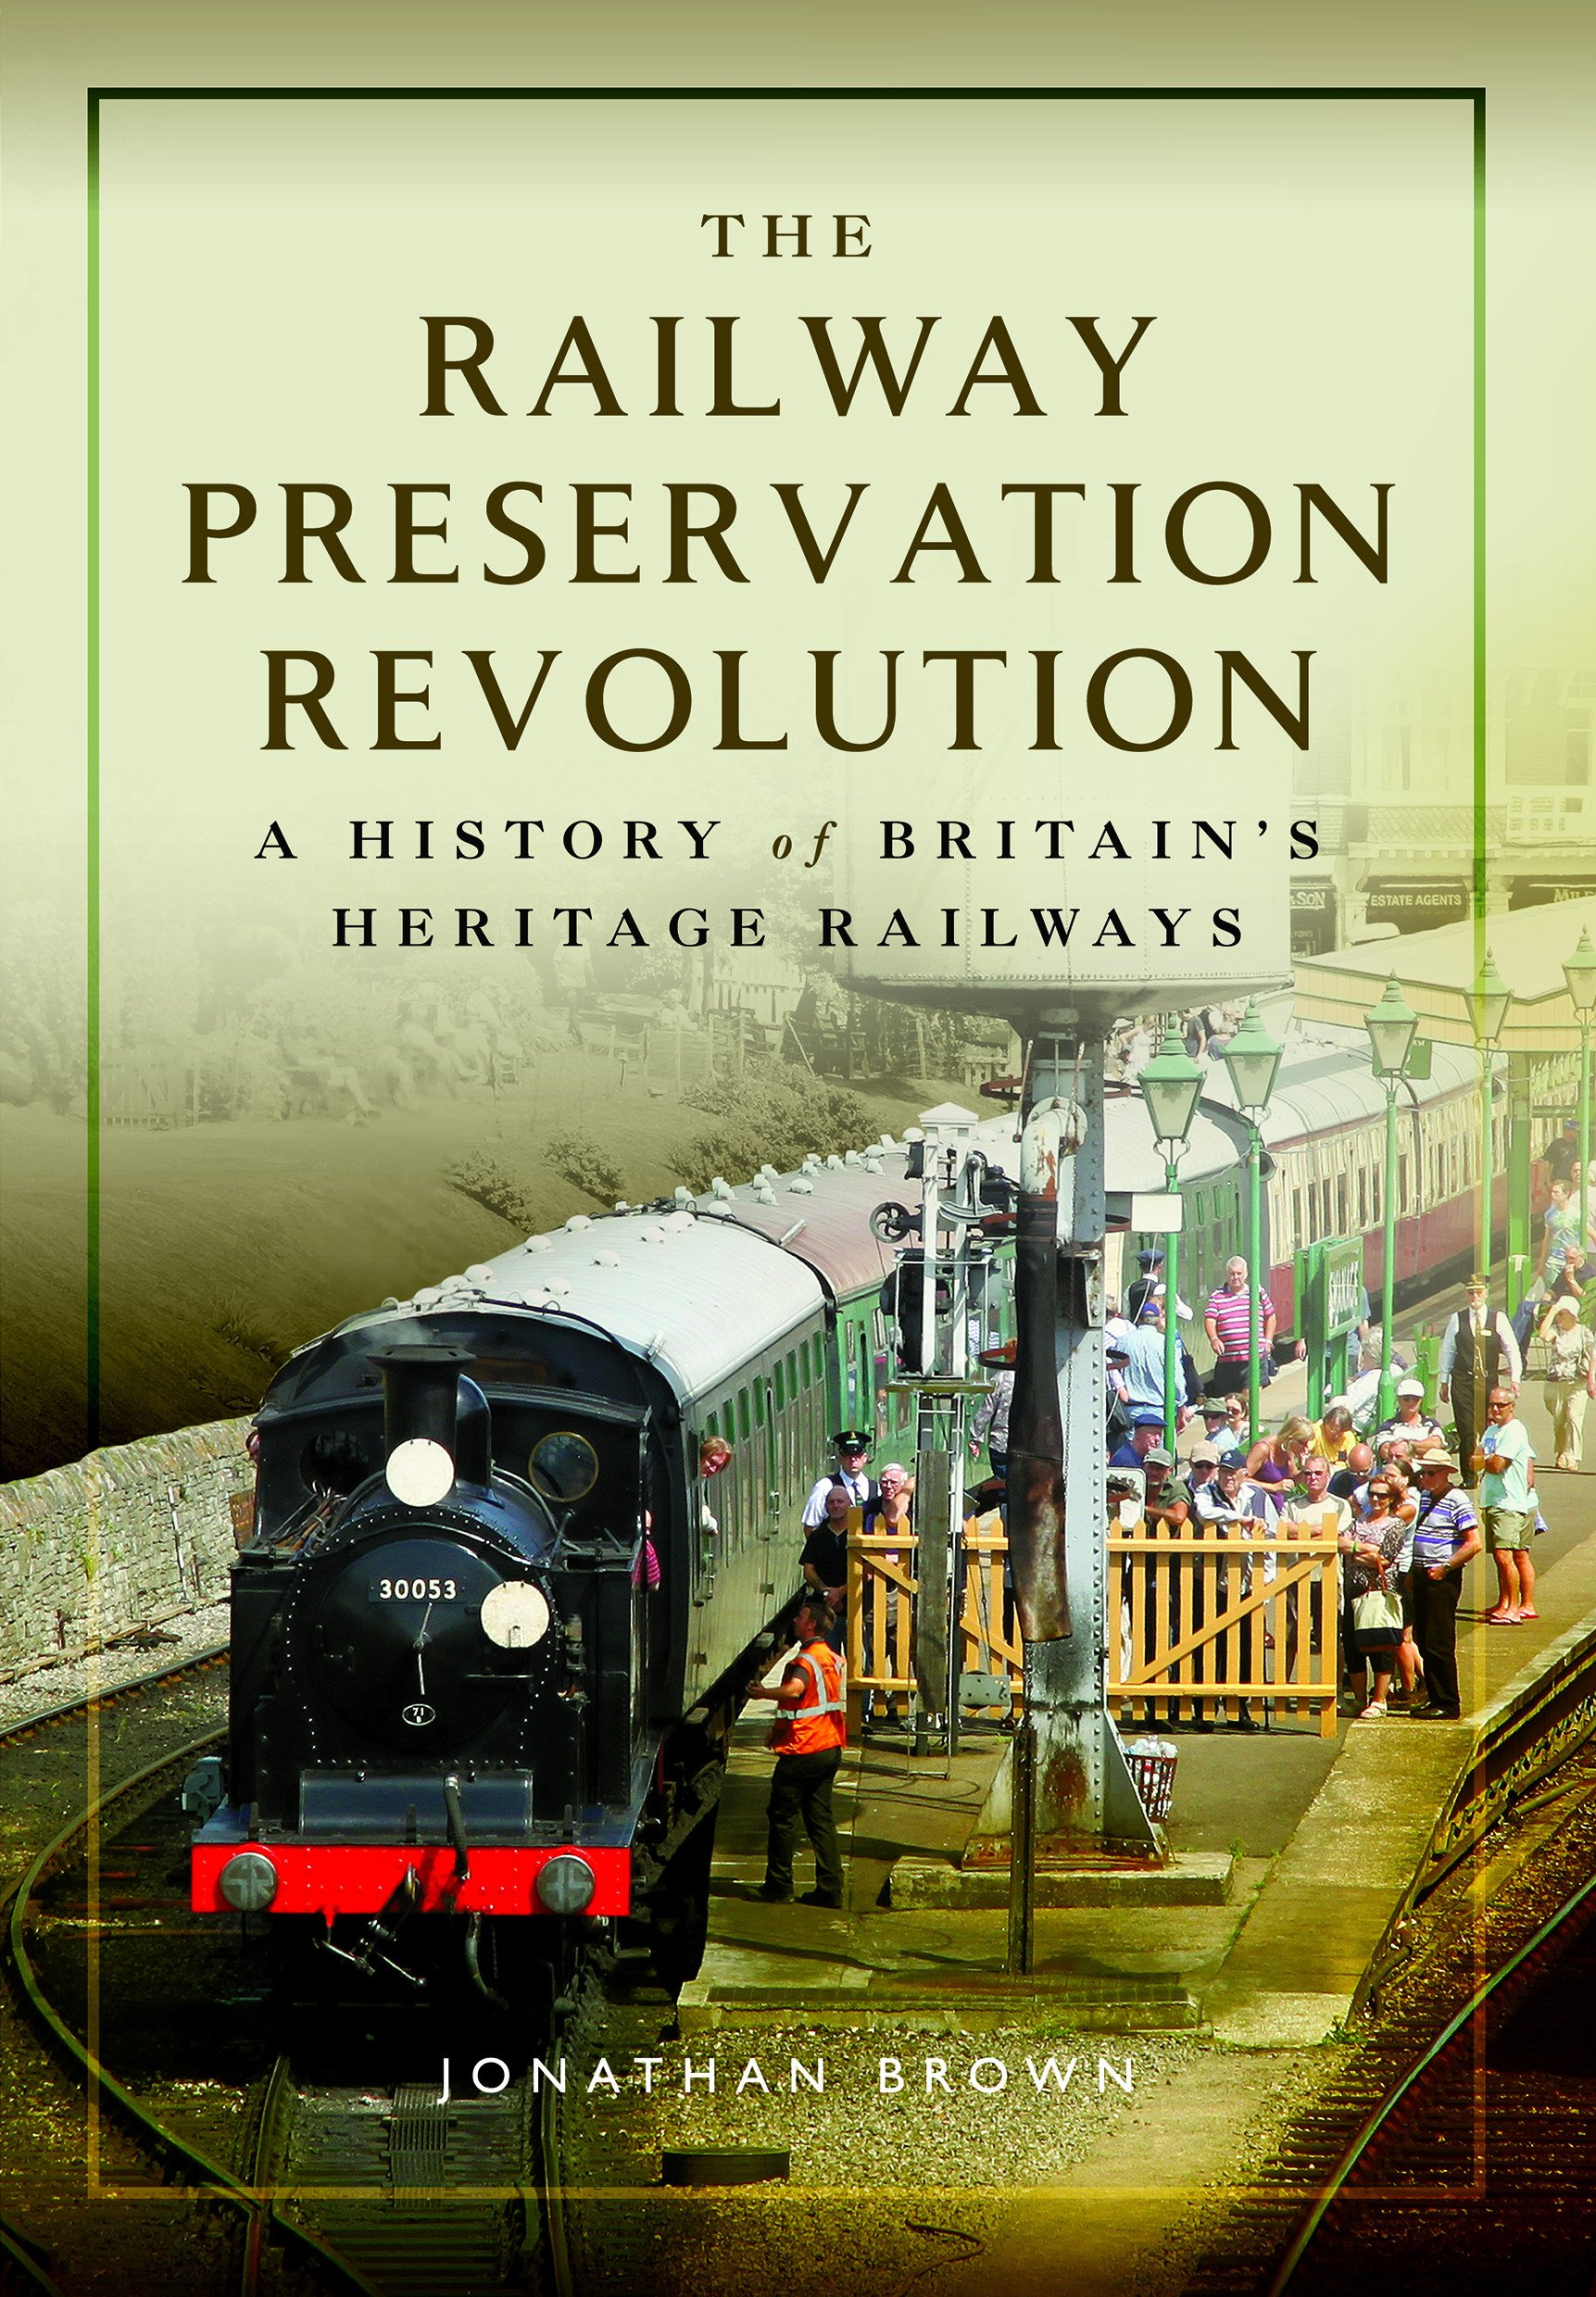 the-railway-preservation-revolution-a-history-of-britain-s-heritage-railways